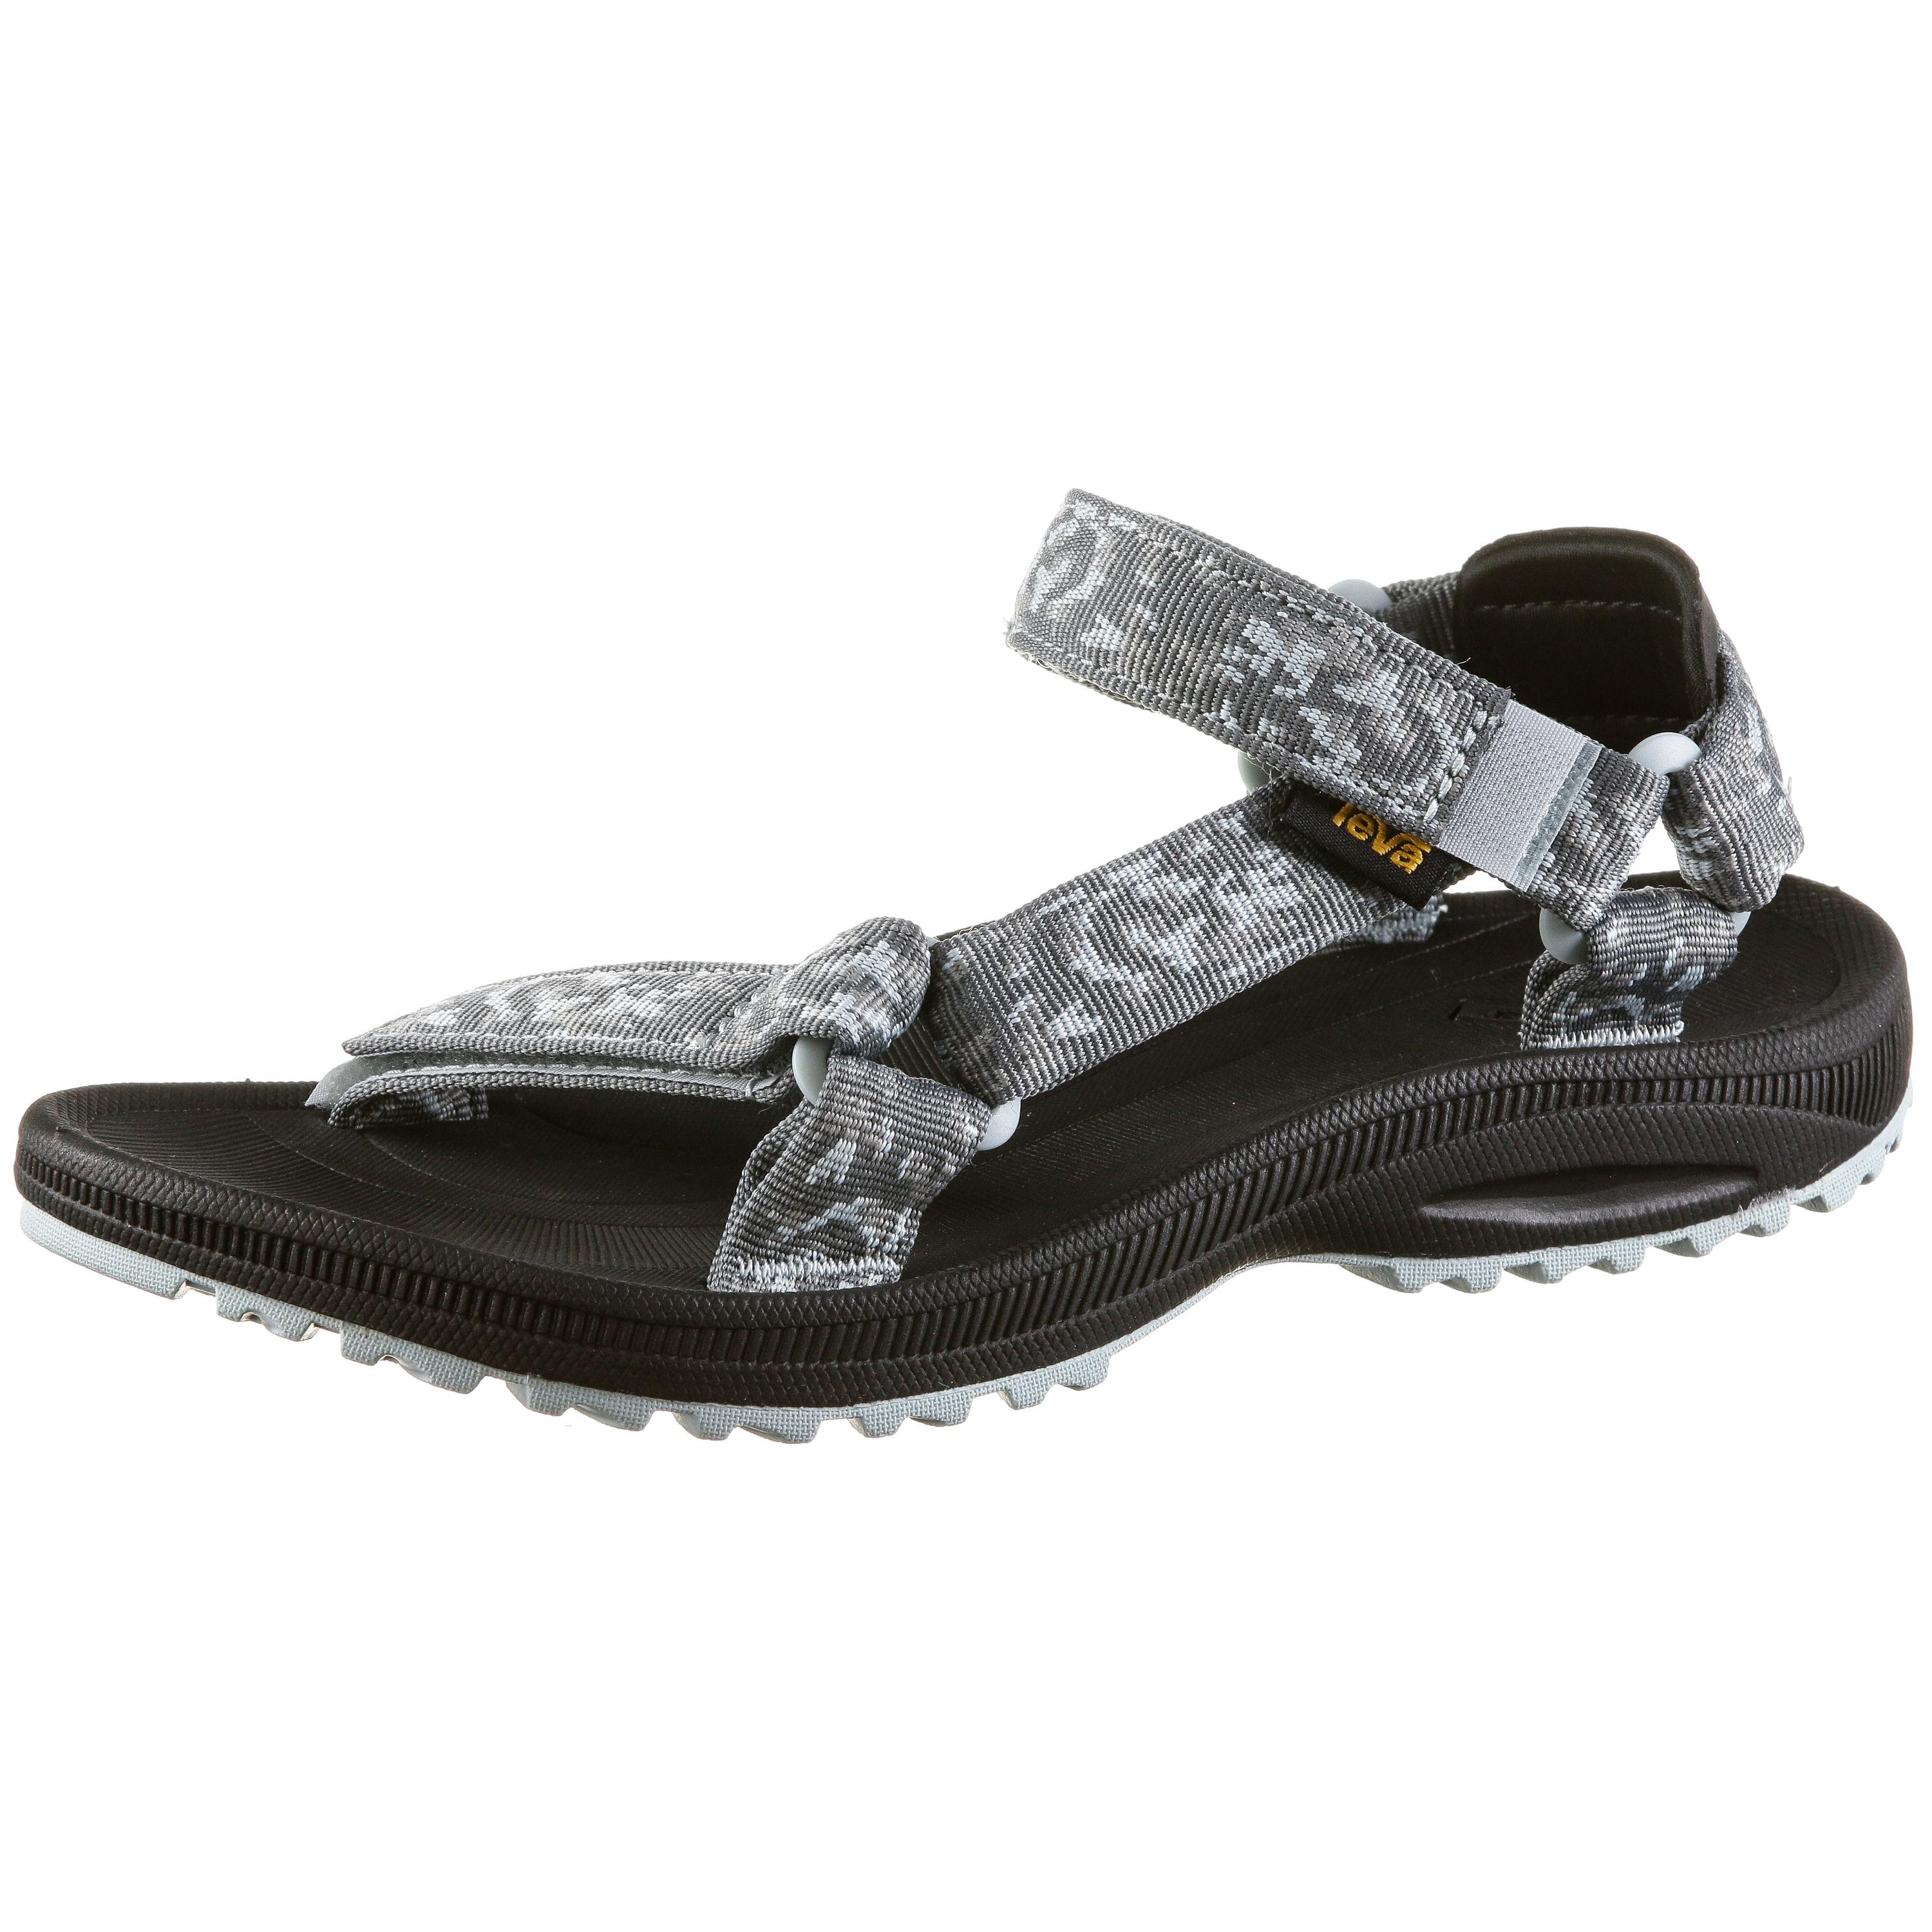 Teva Winsted Outdoorsandalen Damen